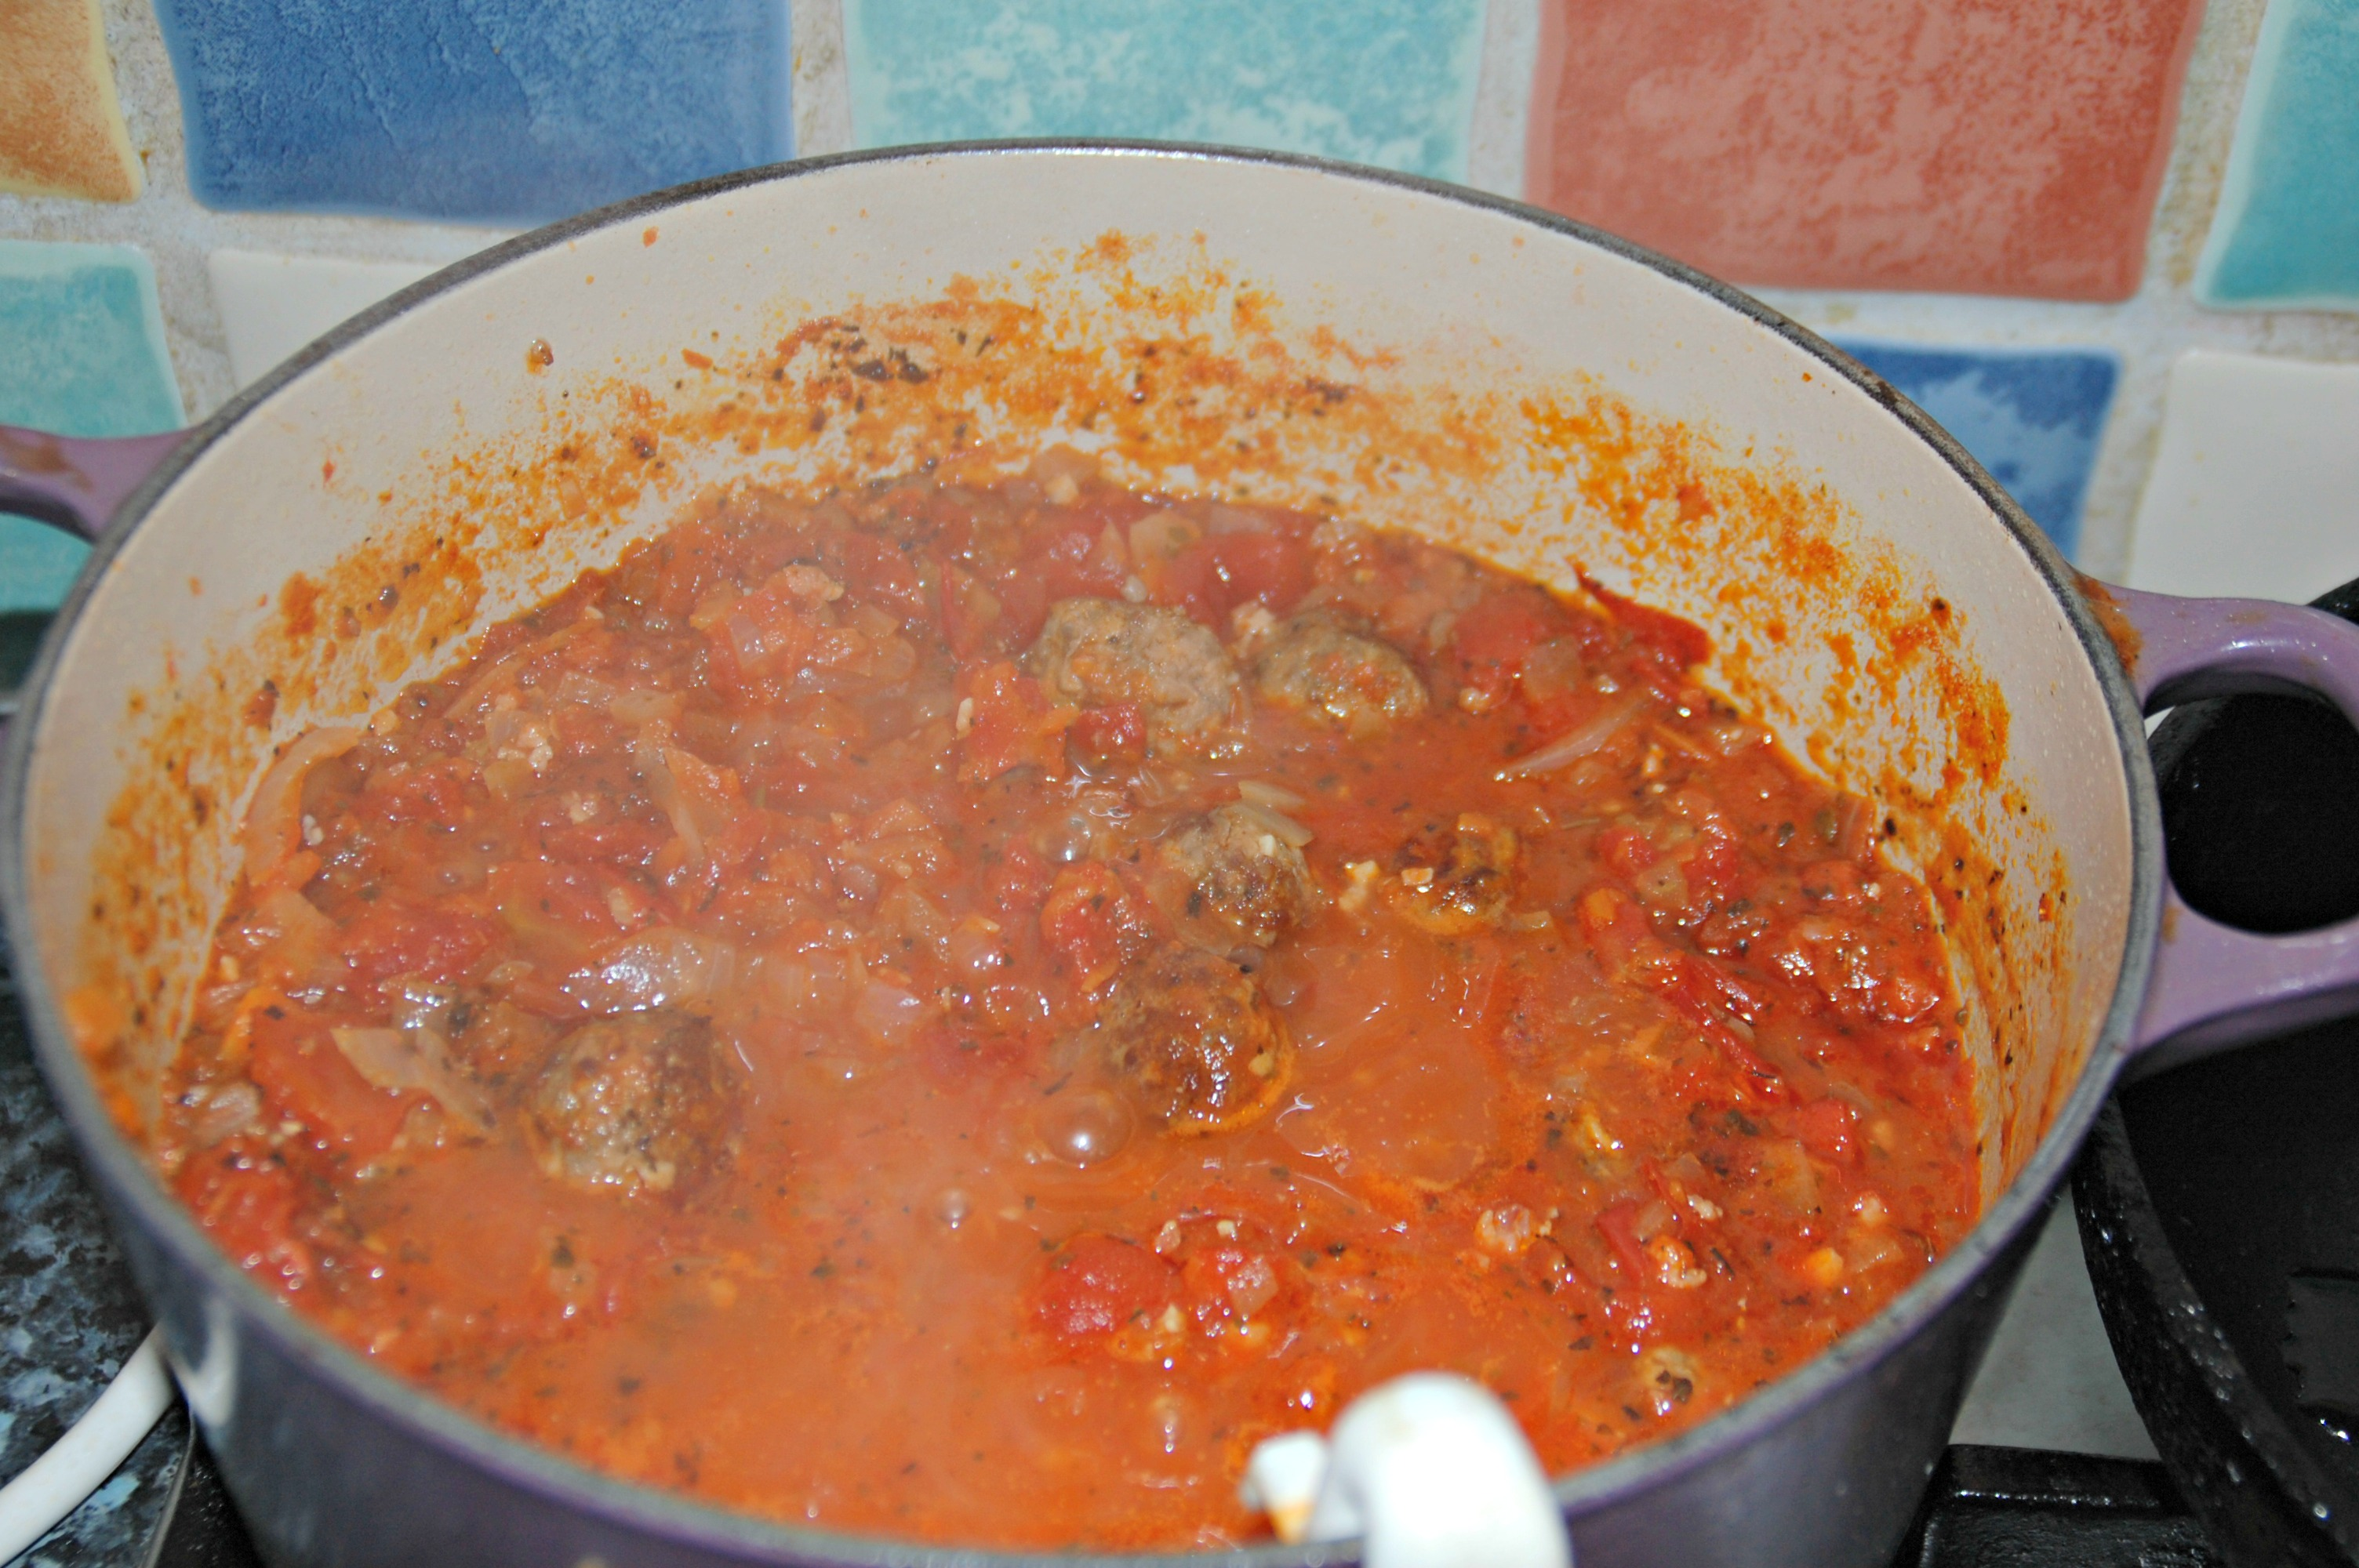 Red ragu and meatballs simmering